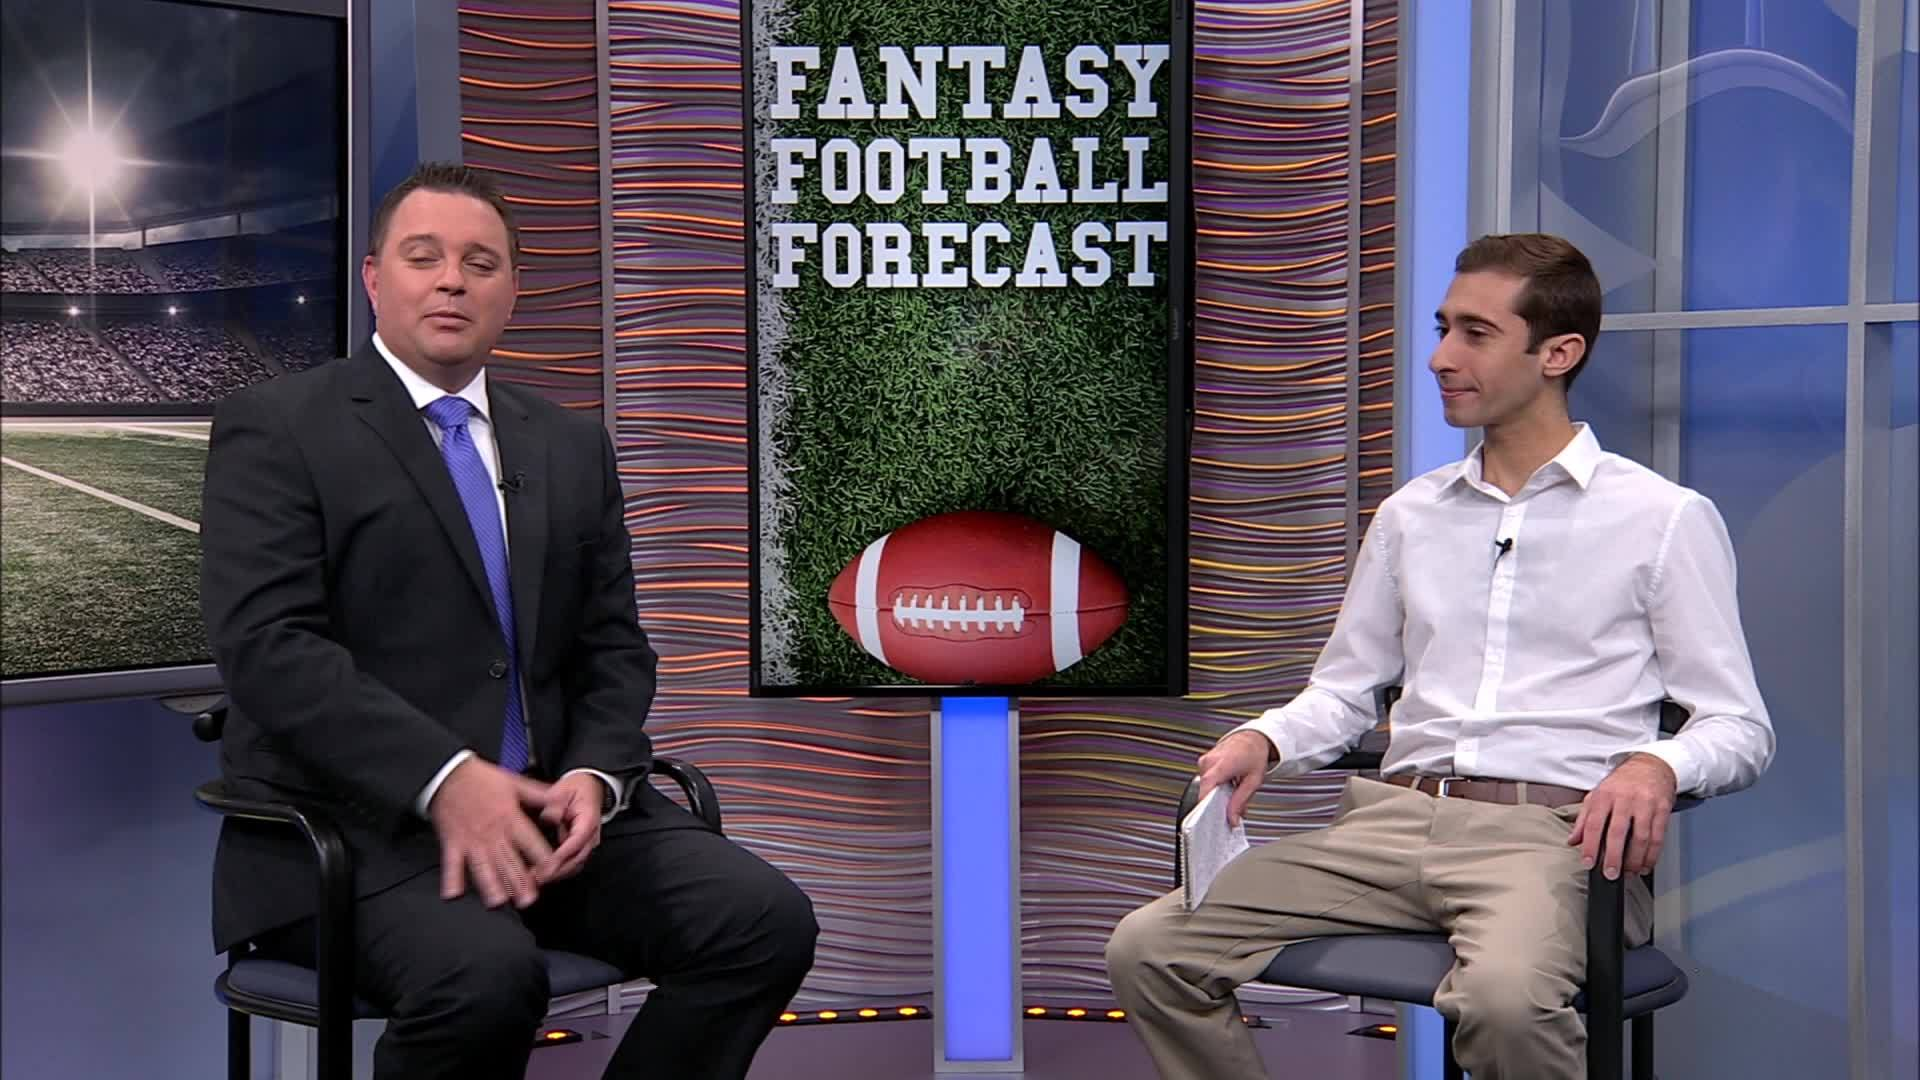 Get ready for your championship games with the Fantasy Football Forecast